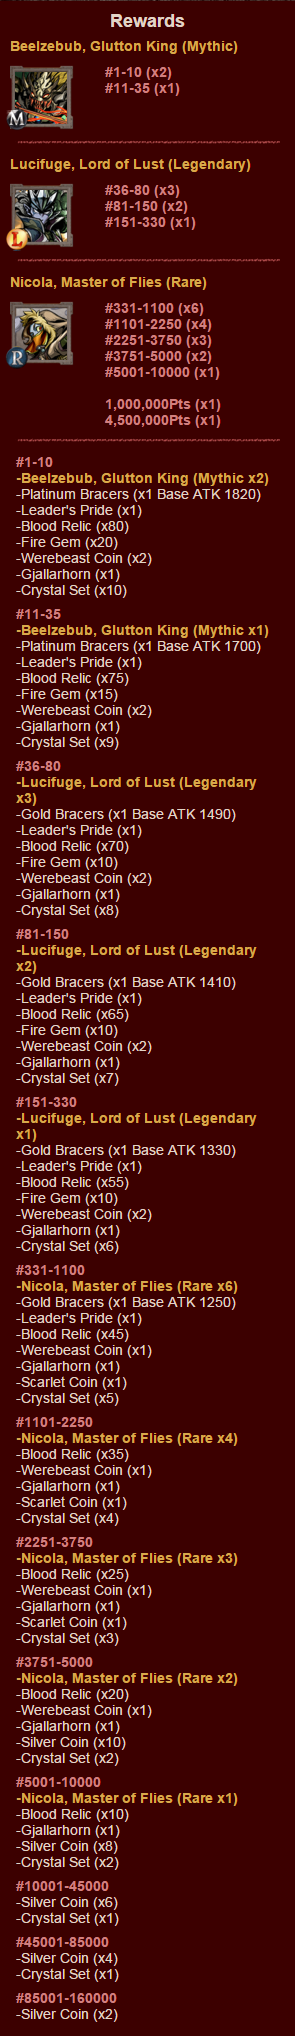 The Blighted Wood Rewards